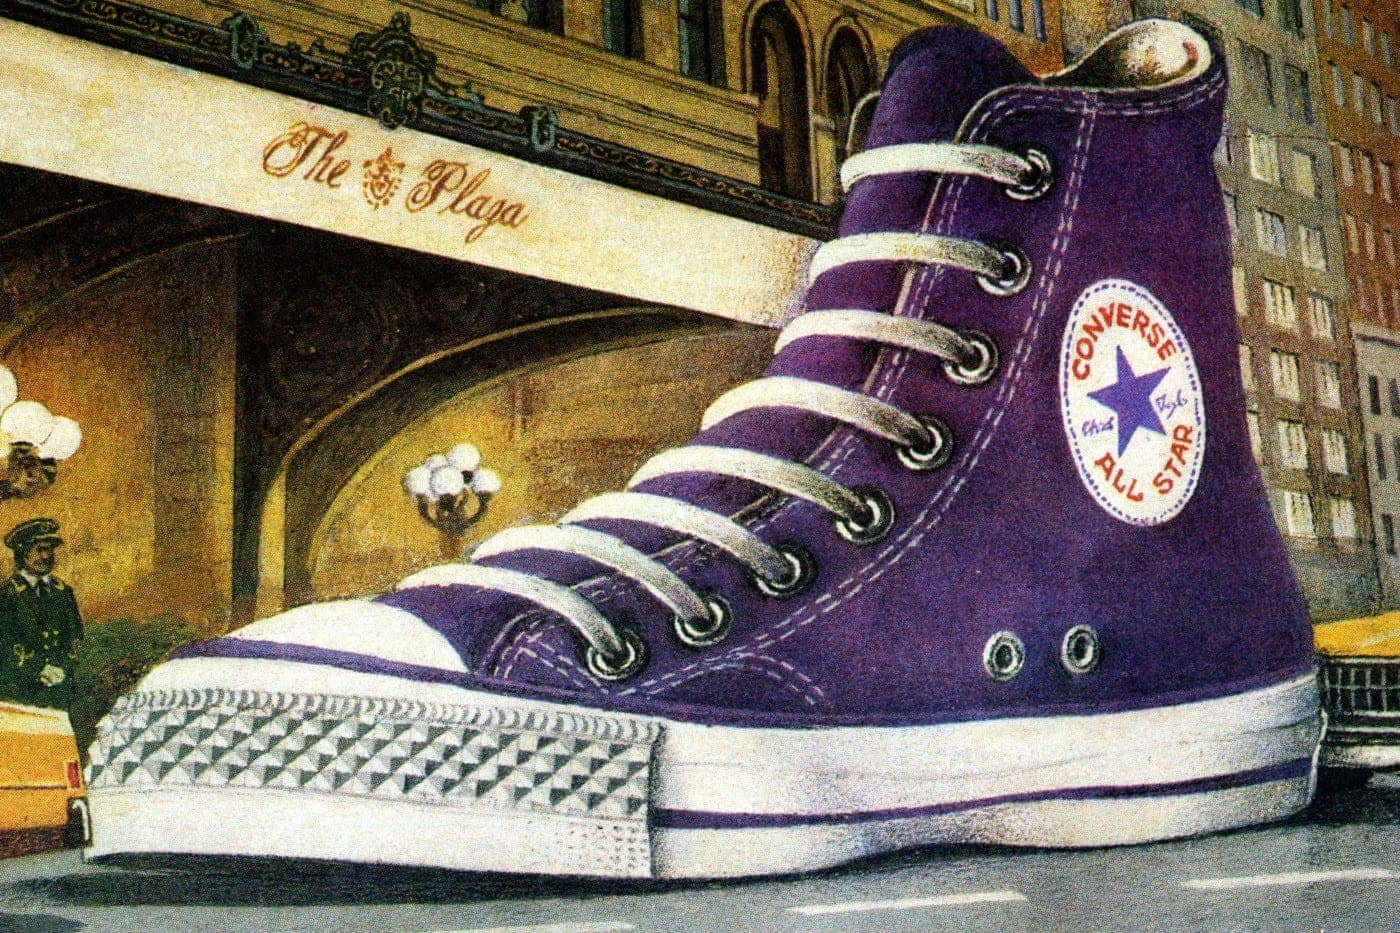 Converse vintage shoes: The old-school